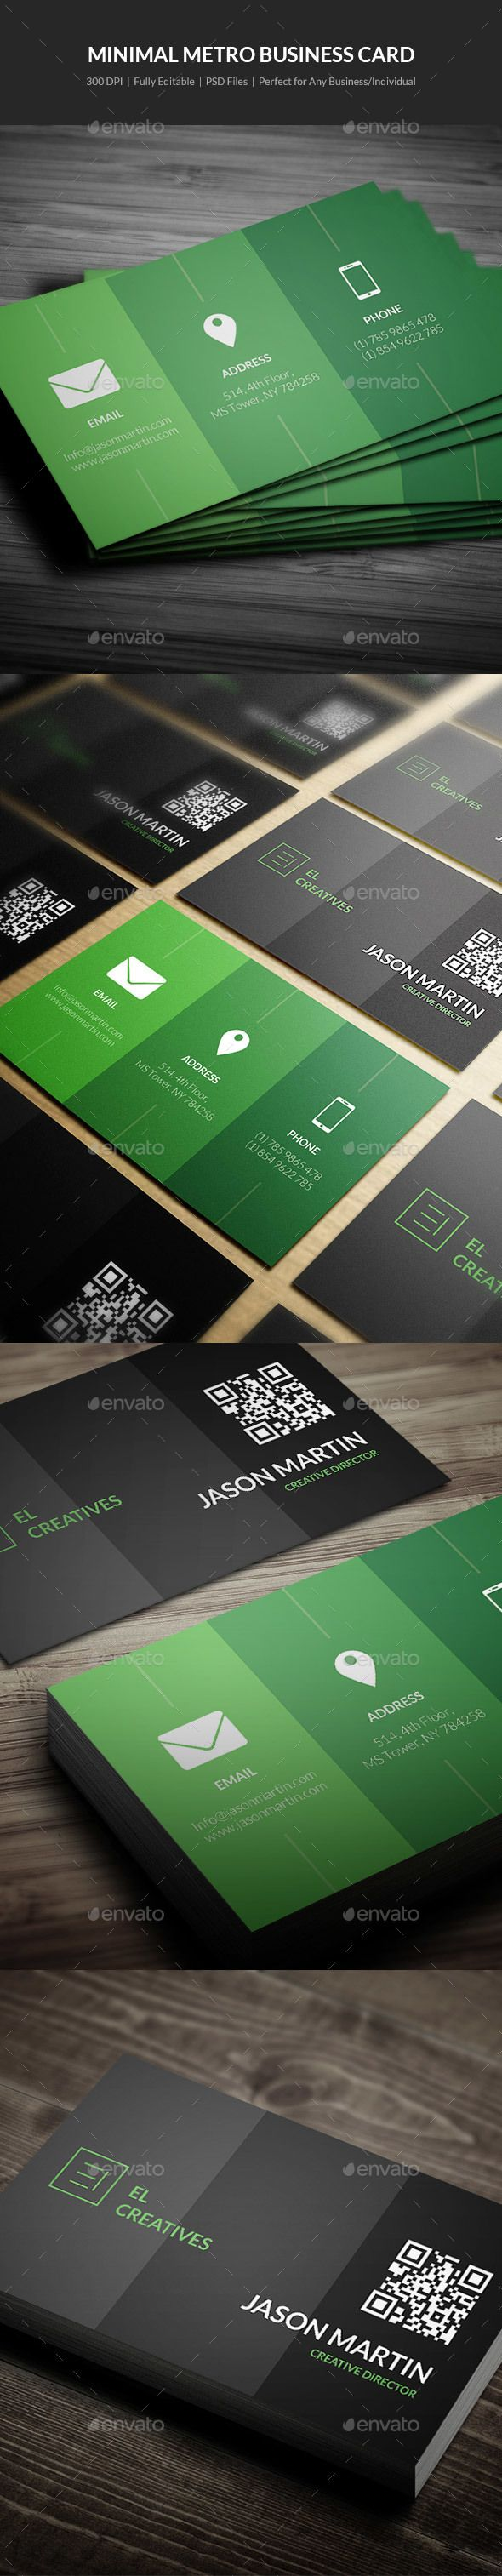 Best 25+ Business card software ideas on Pinterest | Business card ...